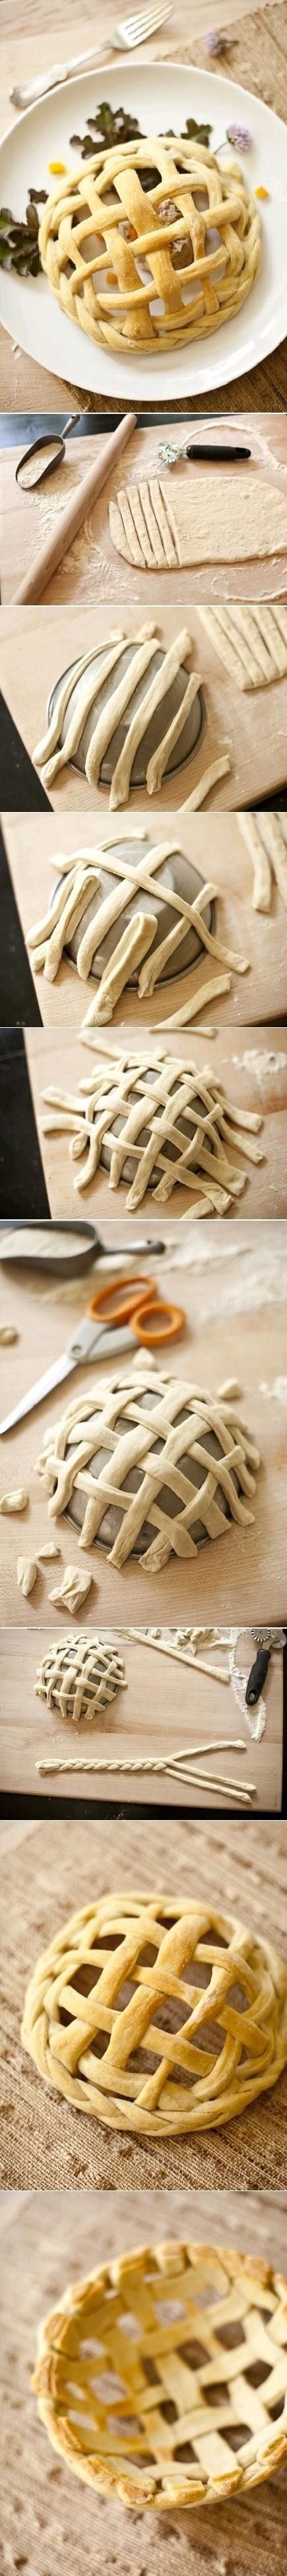 DIY Tasty Basket DIY Projects